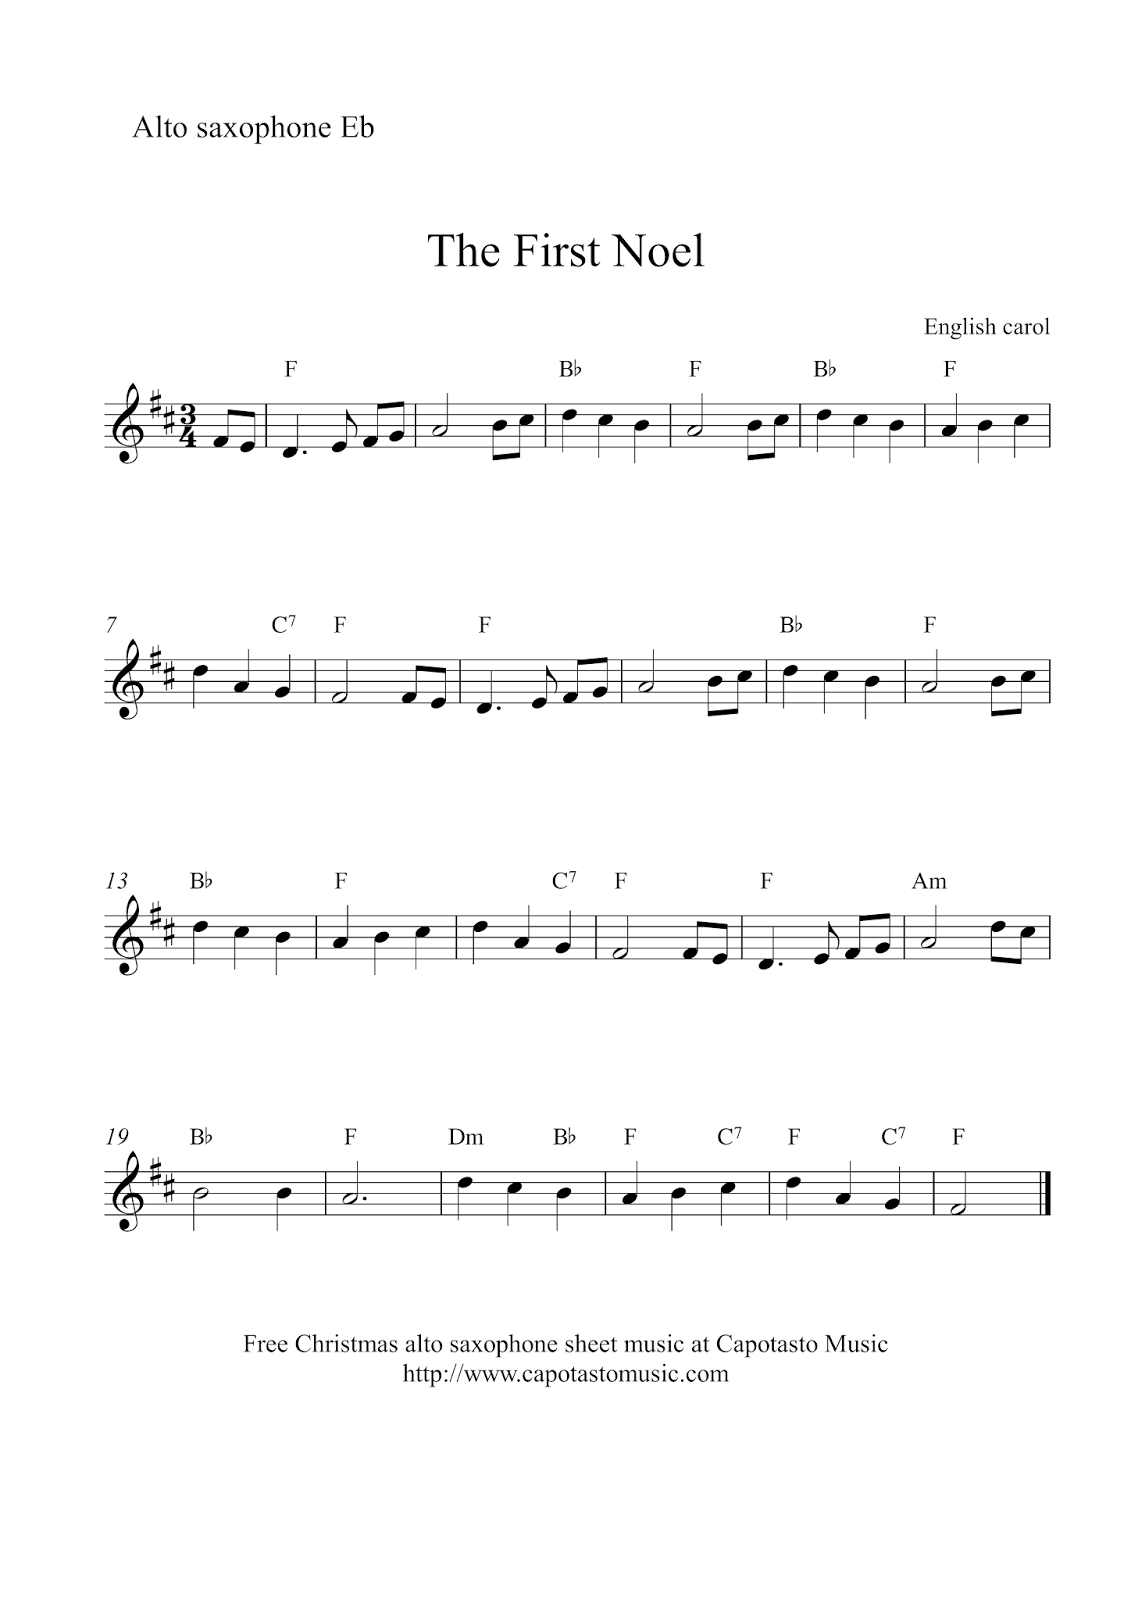 free christmas alto saxophone sheet music the first noel. Black Bedroom Furniture Sets. Home Design Ideas